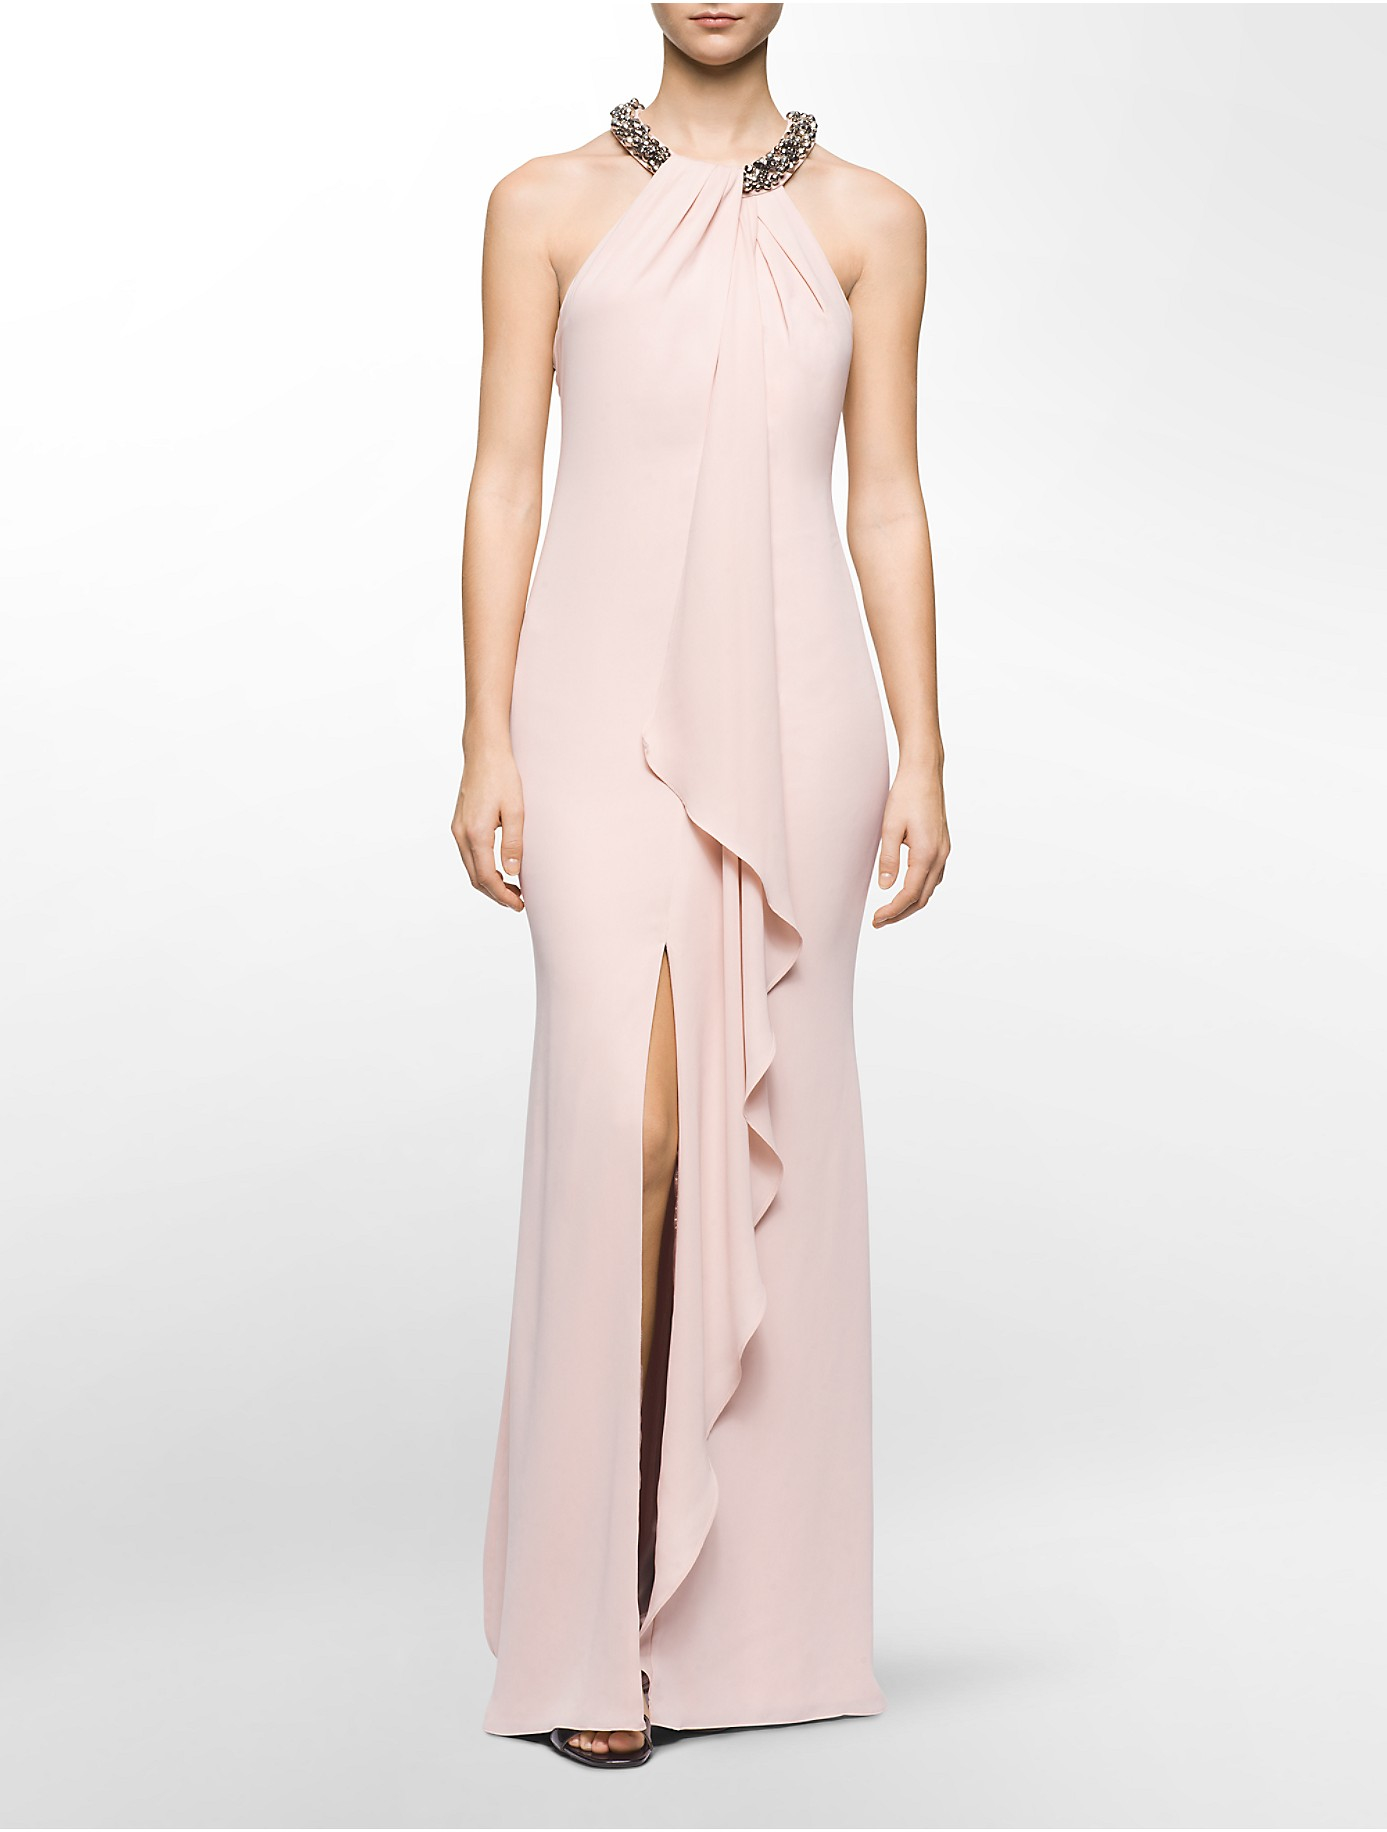 Lyst - Calvin Klein White Label Jeweled Halter Draped Gown in Pink